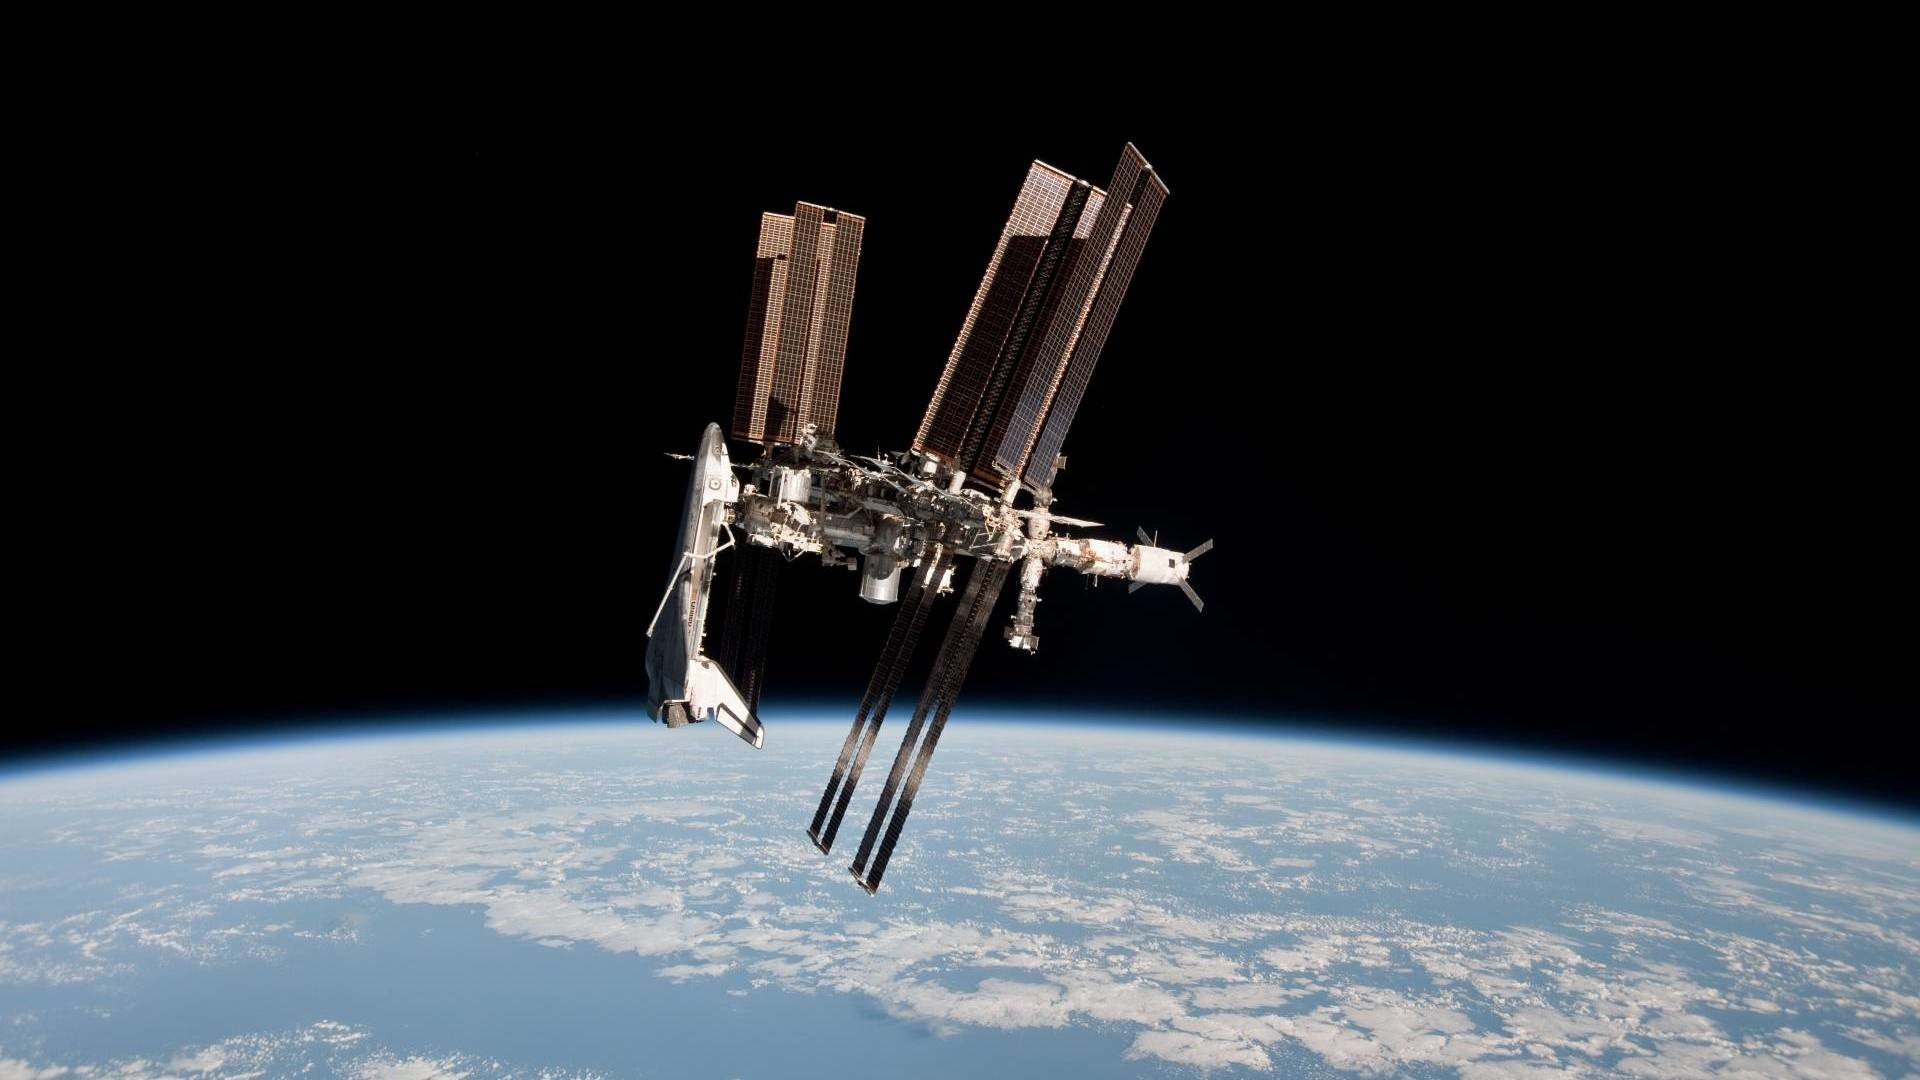 1920x1080 International Space Station HD Wallpaper